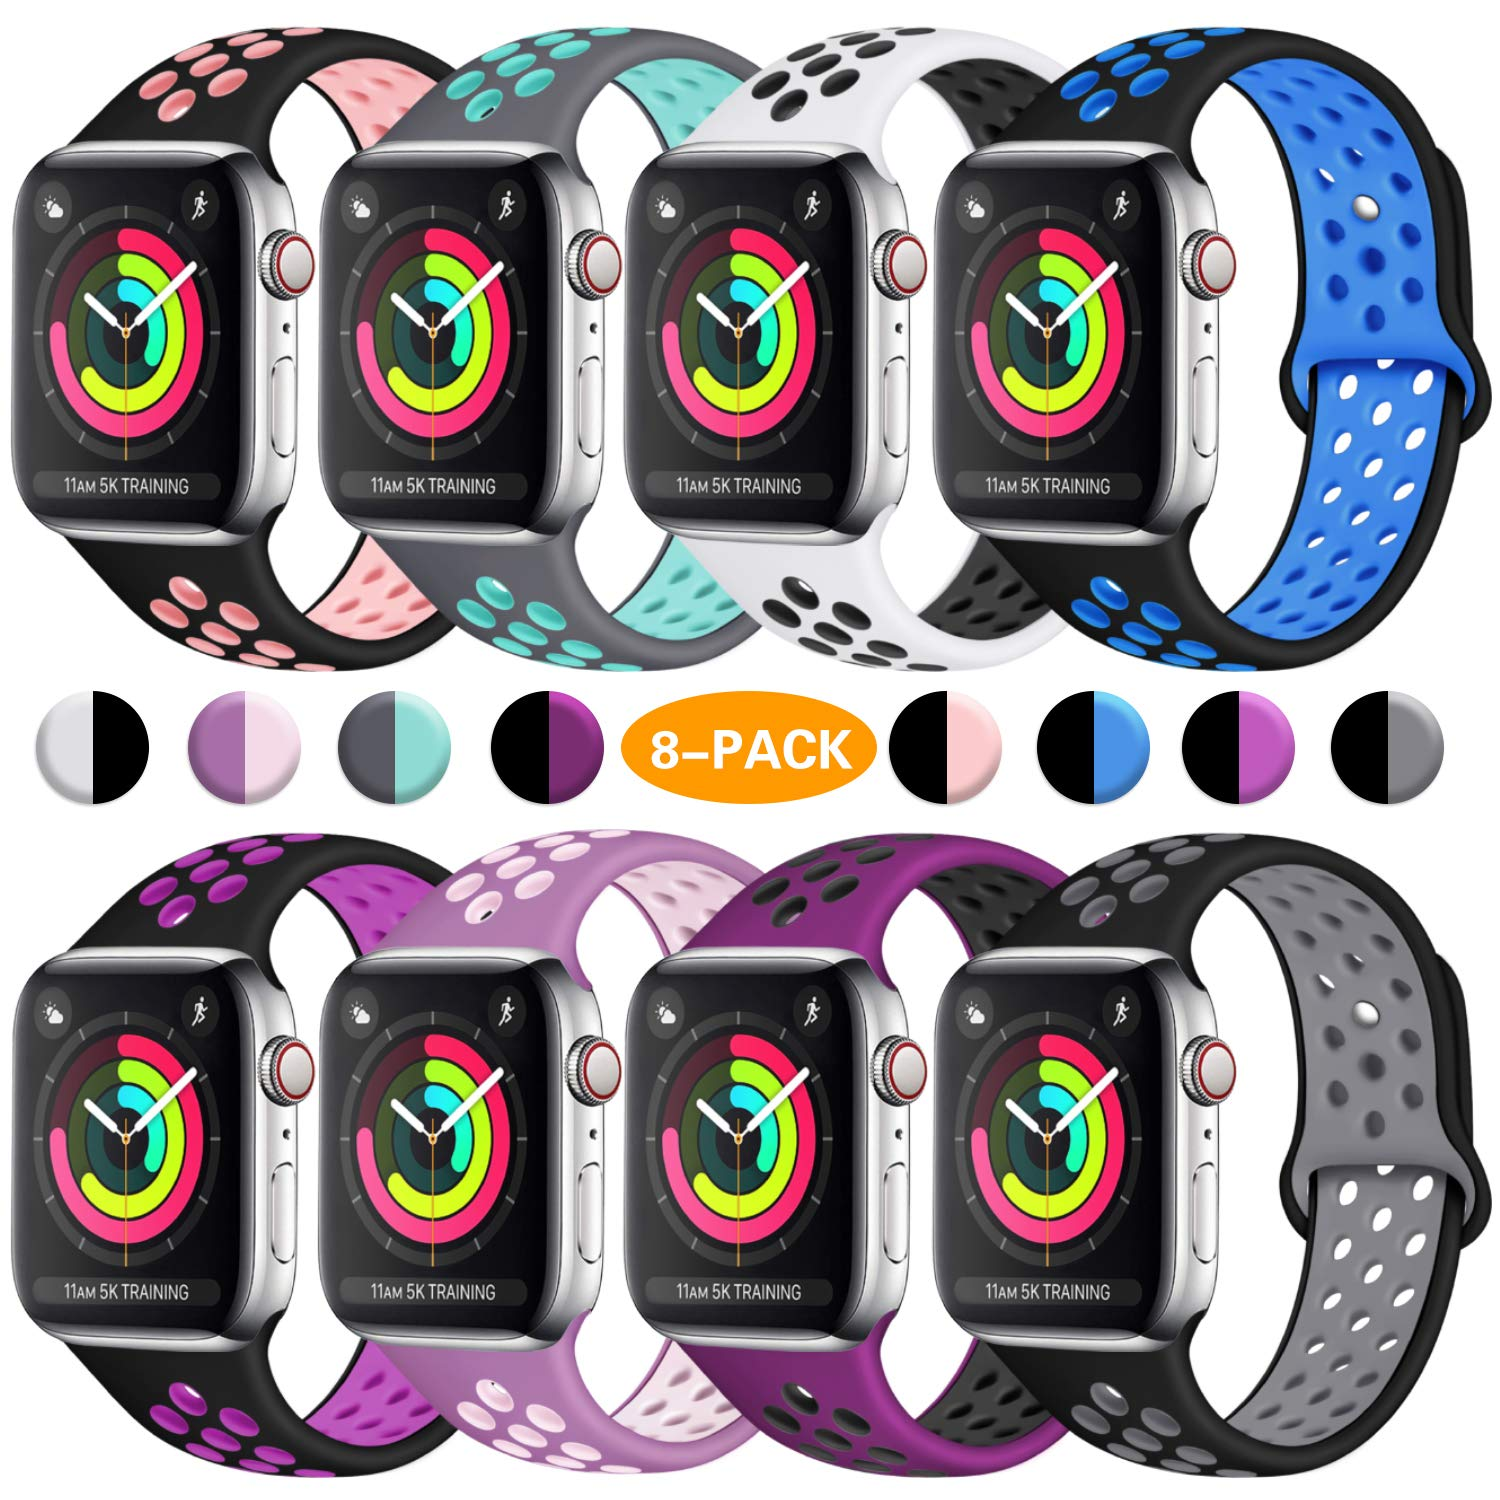 ilopee Bands for Apple Watch 38mm 40mm Series 5 4 3 2 1, Multi Colors, S/M by ilopee